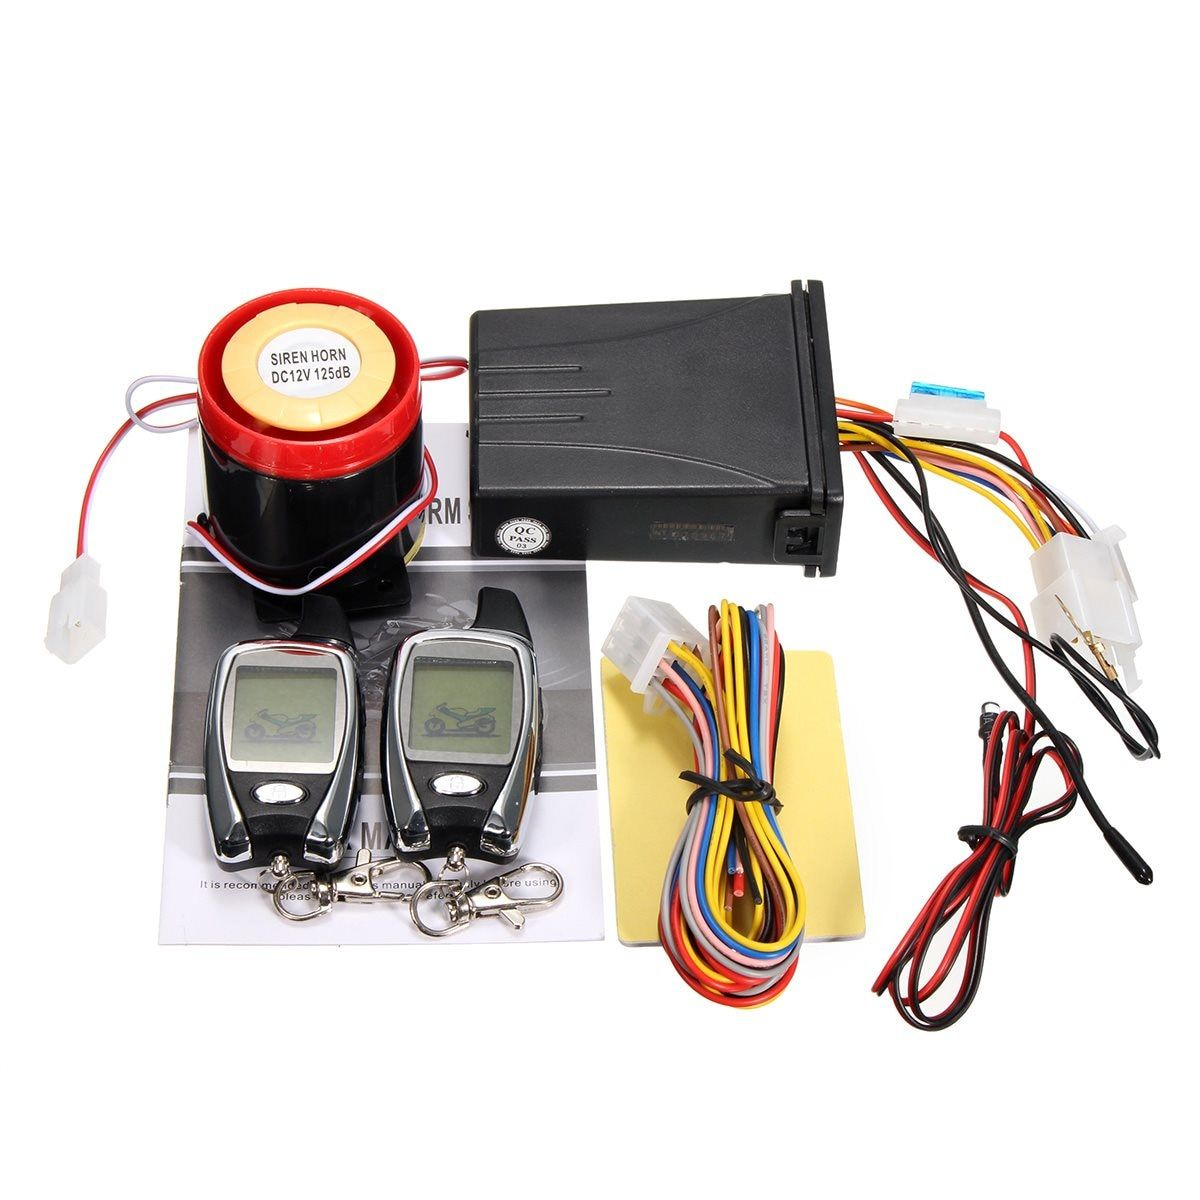 LCD 2 Way Motorcycle Alarm Remote Control Engine Start Security Anti-theft System